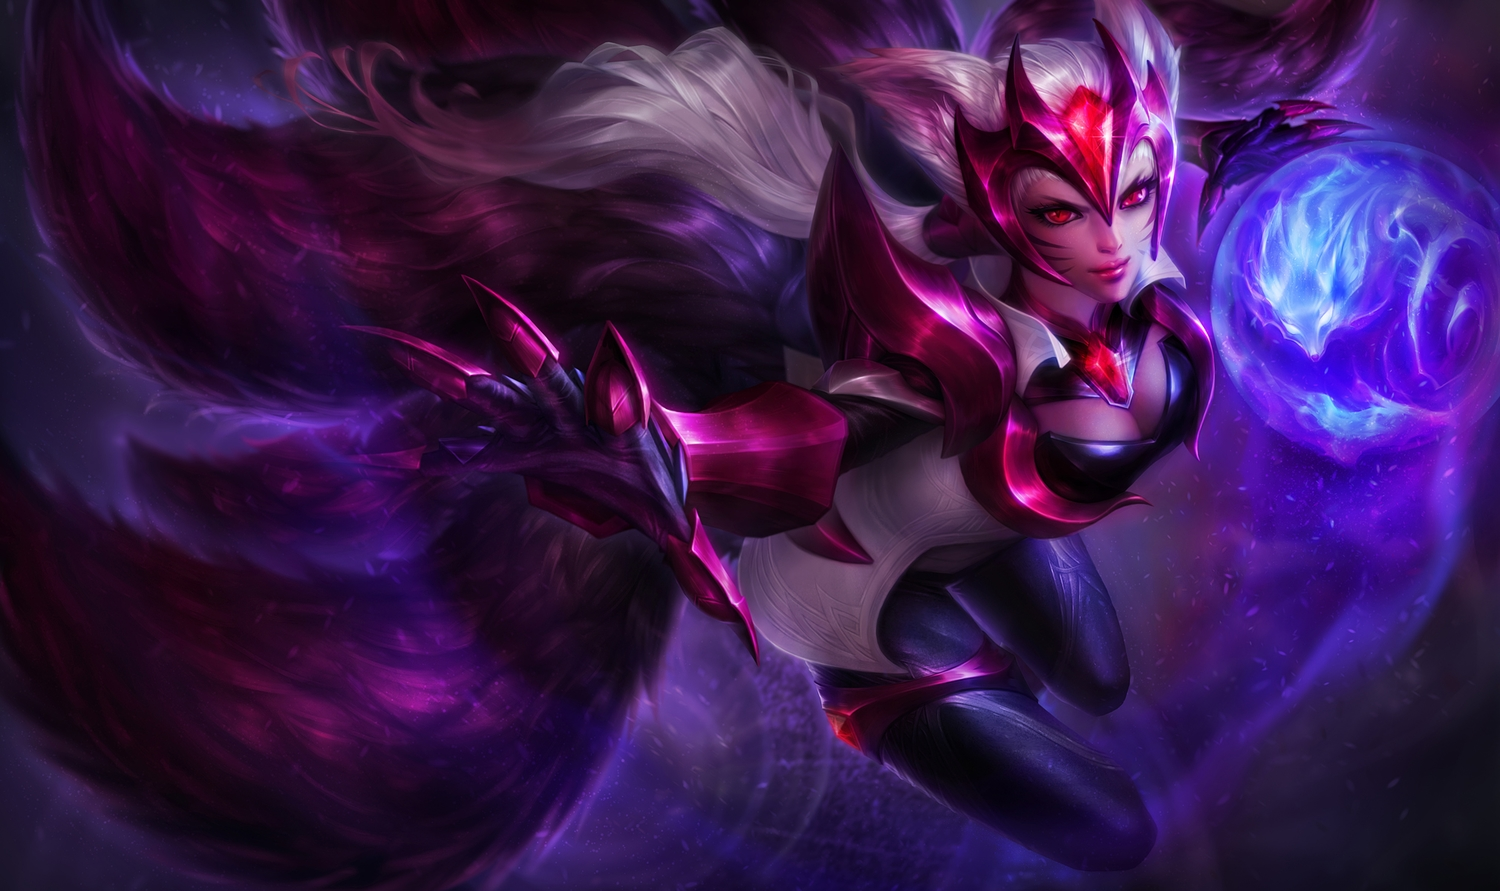 ahri_(league_of_legends) animal_ears bodysuit foxgirl league_of_legends michelle_hoefener multiple_tails red_eyes tail white_hair